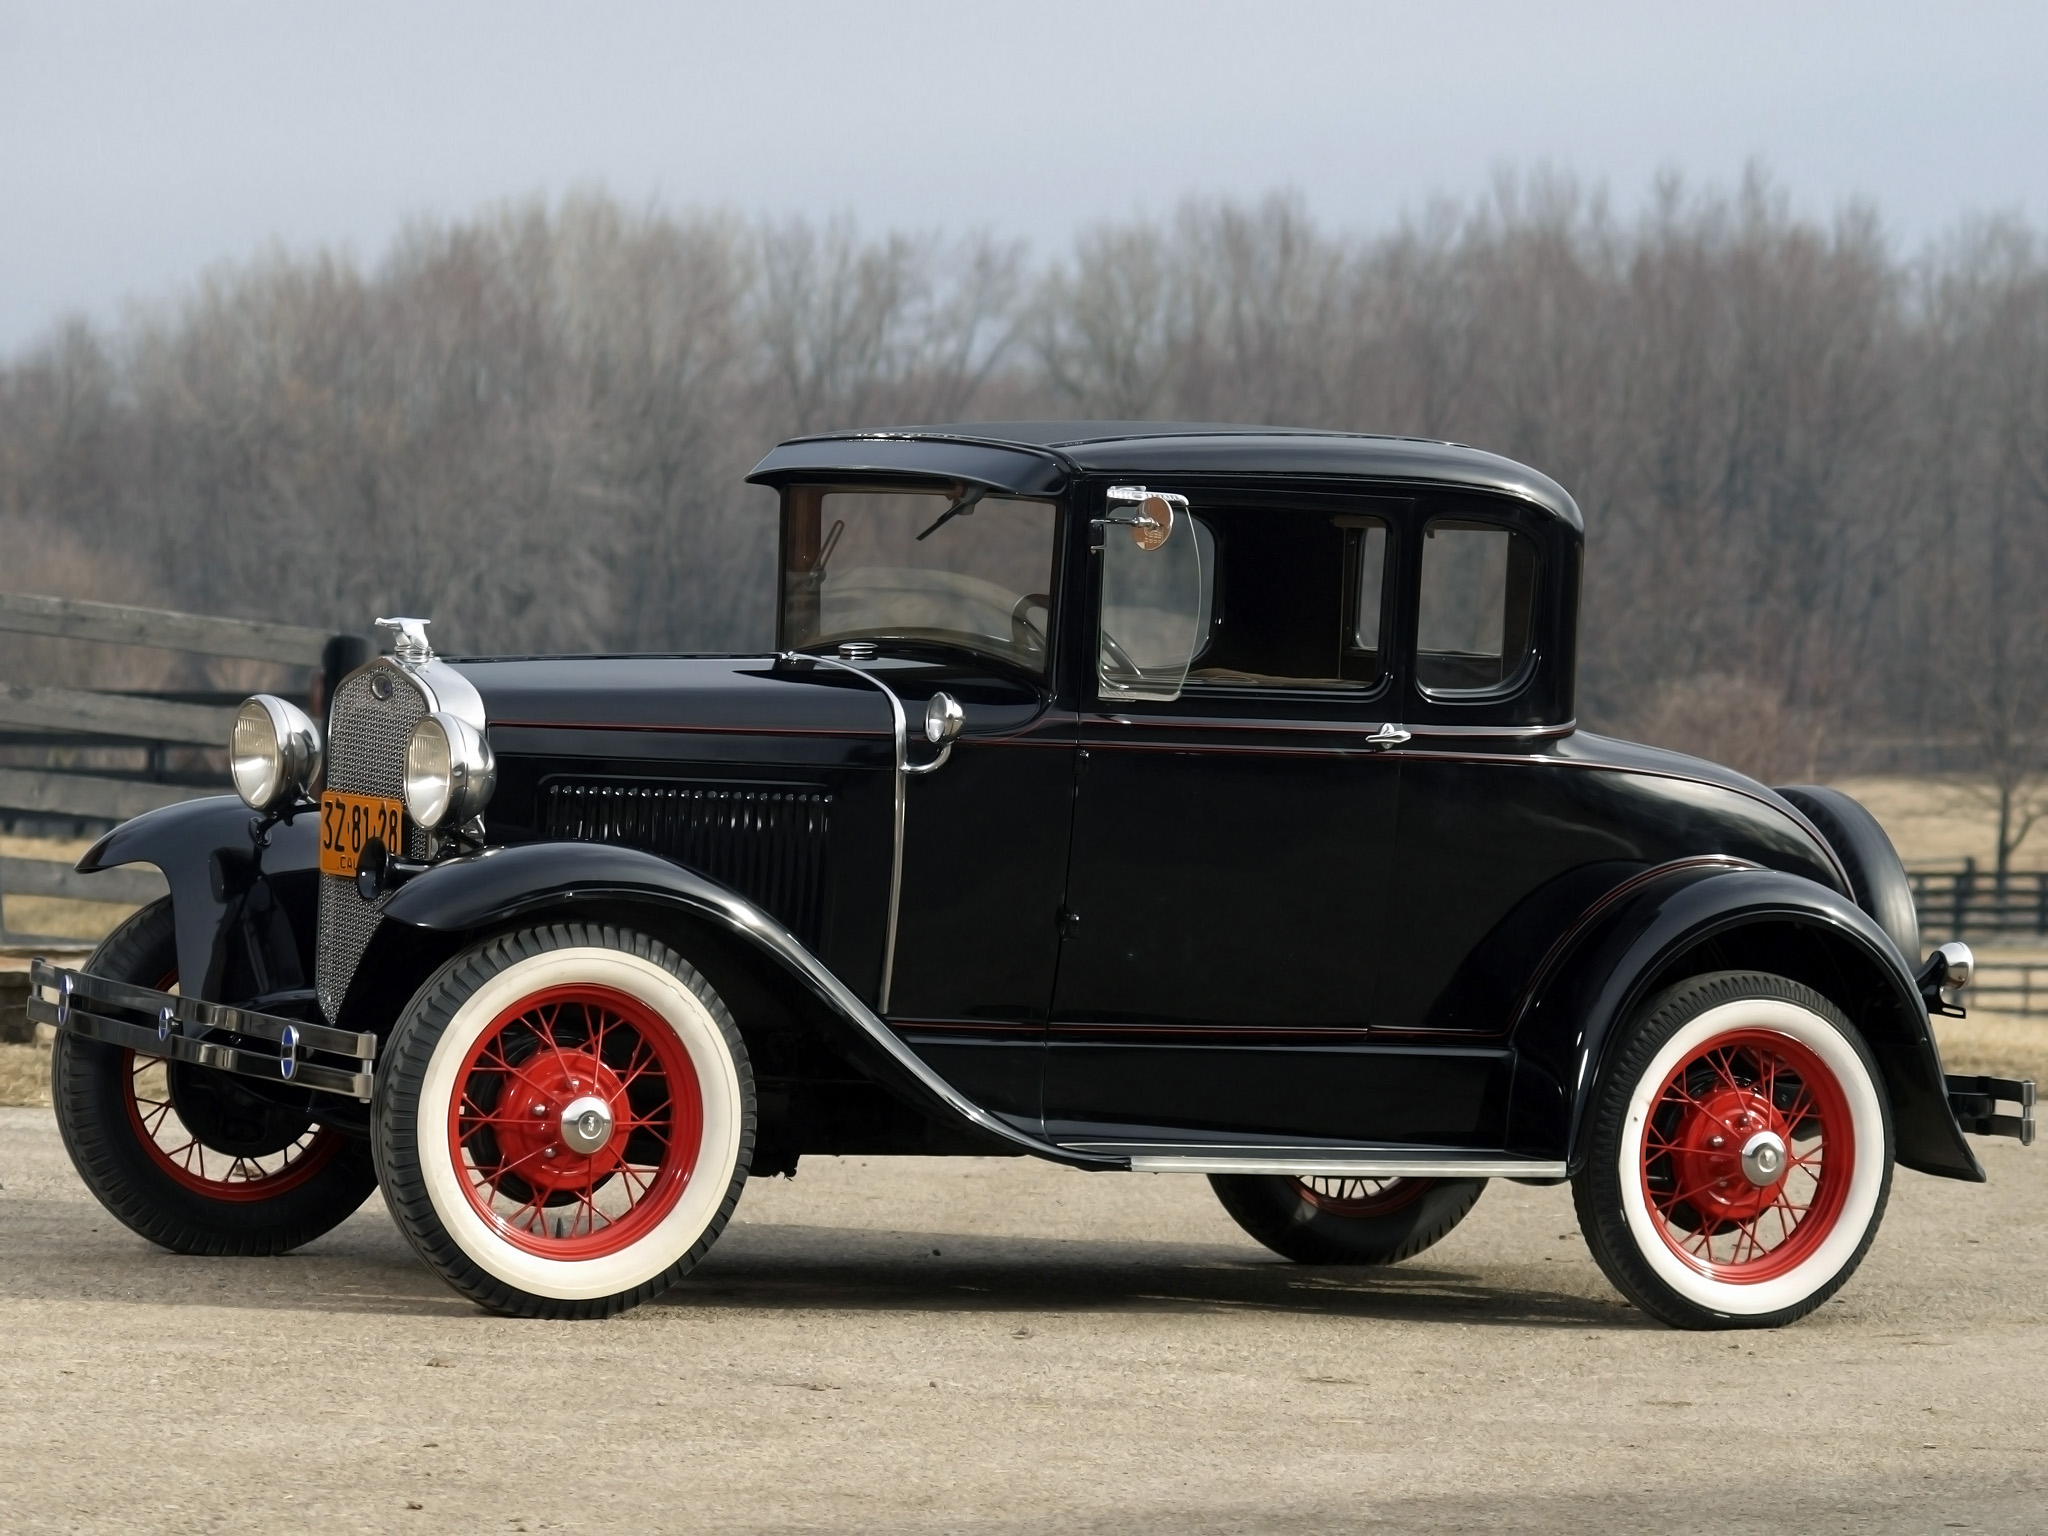 HQ 1930 Ford Coupe Wallpapers | File 568.08Kb